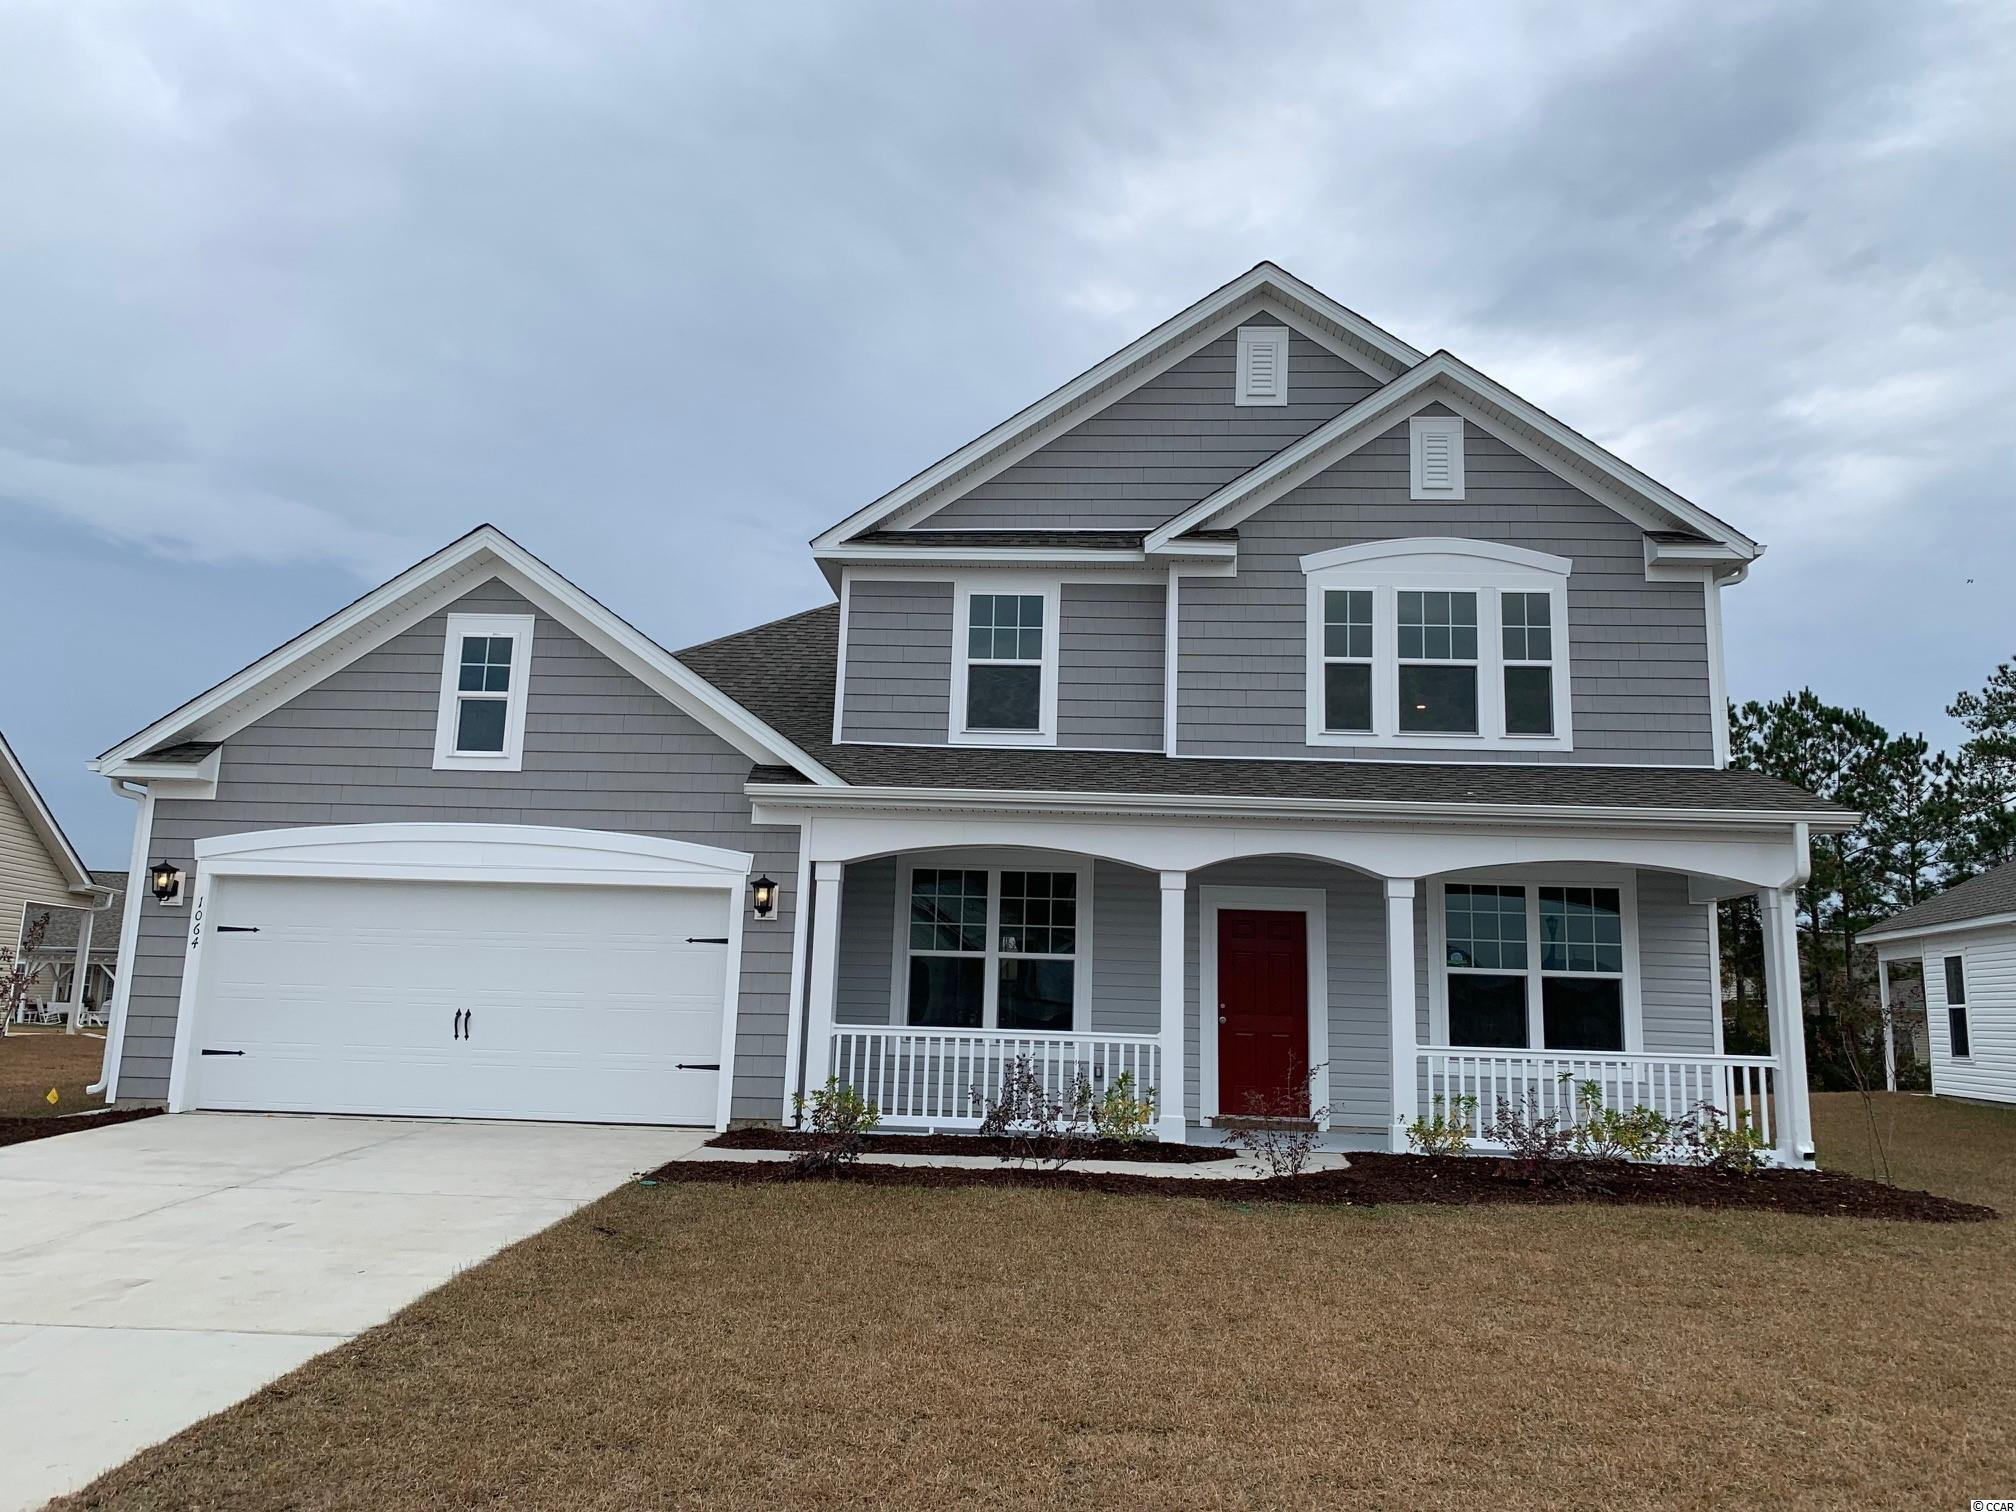 This Ivey-SHL (Shingle elevation) home offers 3 bedrooms, 2.5 baths, a study, a loft, a formal dining room, a spacious kitchen open to the great room, and a screened porch.  This Ivey has been personalized with incredible included features: easy maintenance REV Wood laminate flooring by Mohawk in the living areas, Mohawk carpet in all bedrooms, the study, and loft, Daltile tile in all baths and the spacious laundry room.  The kitchen and butler's pantry boast granite counter tops and luxurious Level-2 Flagstone Master Brand cabinets and stainless steel Level-2 Whirlpool kitchen appliances (natural gas range with double oven, microwave over the range, dishwasher).  Staunton Pendant lights from Progress Lighting will illuminate the large kitchen island.  Fresh white Level-2 Master Brand cabinets will brighten bath 2 and the primary bath.  A beautiful stairway featuring open rail iron balusters leads upstairs to the loft and private bedrooms 2 and 3.  A fabulous large 4-panel sliding glass door in the great room offers access to the screen porch and outdoor living area.  Agreeable Gray Sherwin Williams paint and Moen plumbing fixtures add to the upscale features of this home.  This Ivey is an Energy Star Certified home creating more comfort at a lower cost.  Belle Mer amenities include a community pool, clubhouse with a gathering room, catering kitchen, and exercise room, sidewalks throughout, fishing and non-motorized boating lakes, and weekly curbside trash collection.  Belle Mer offers a premier location between Myrtle Beach and Murrells Inlet off Bypass-17, conveniently located across from 3 large shopping and dining venues, and less than 3 miles to the beach.